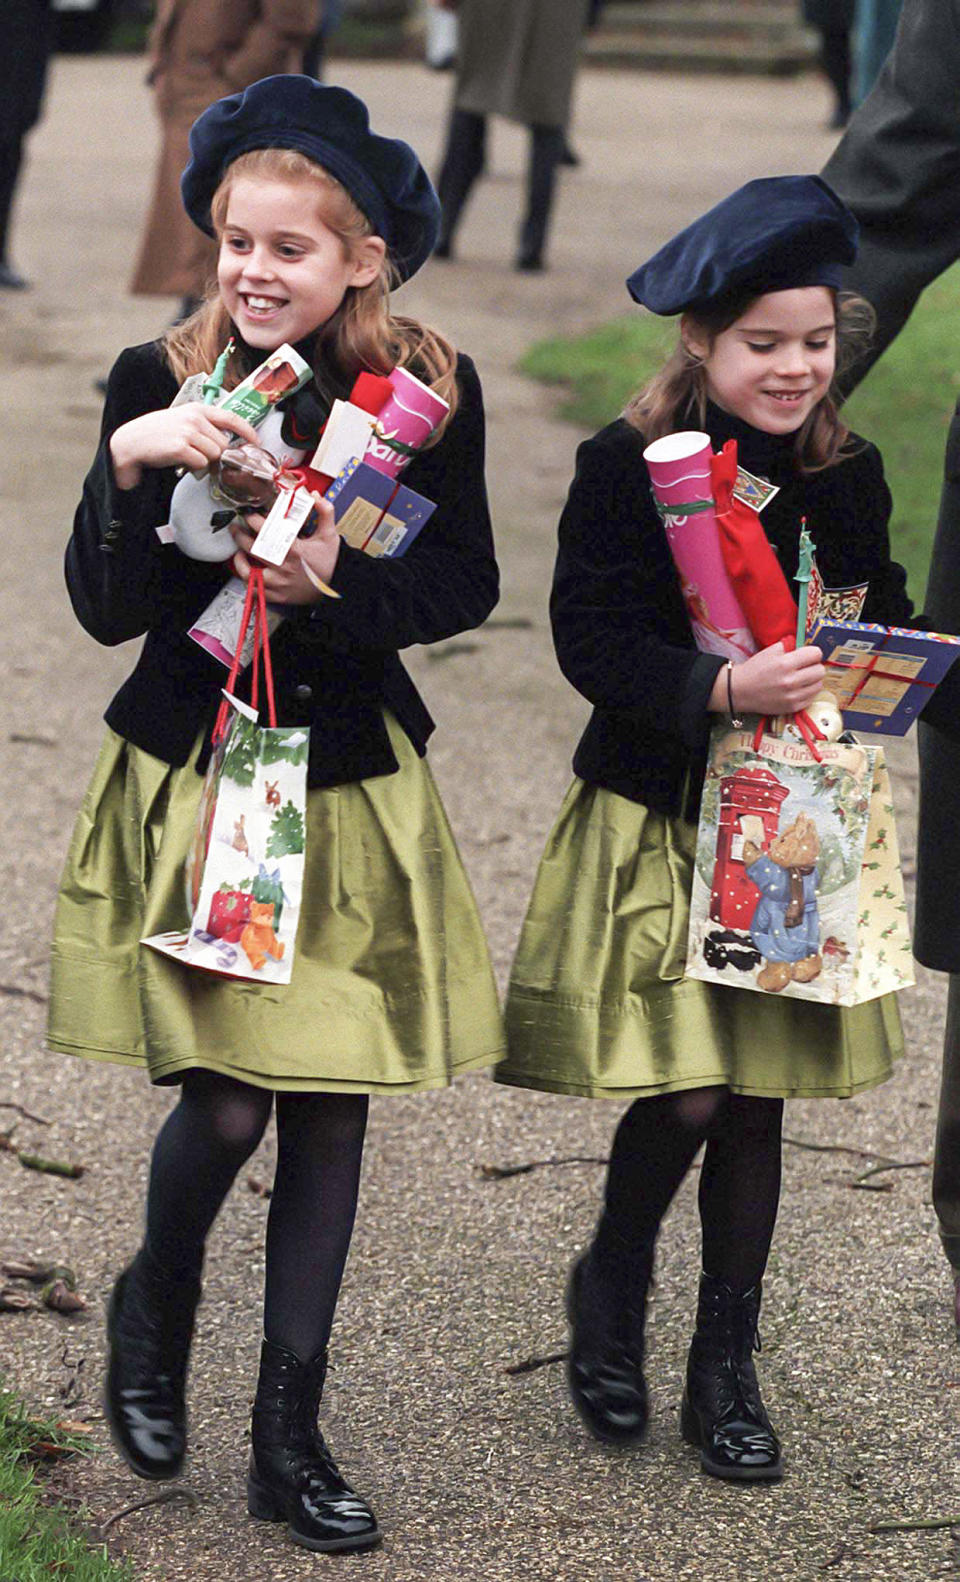 Princess Beatrice and Princess Eugenie couldn't hold in their excitement in 1997 when they received bundles of gifts from royal fans gathered outside the church. Photo: Getty Images